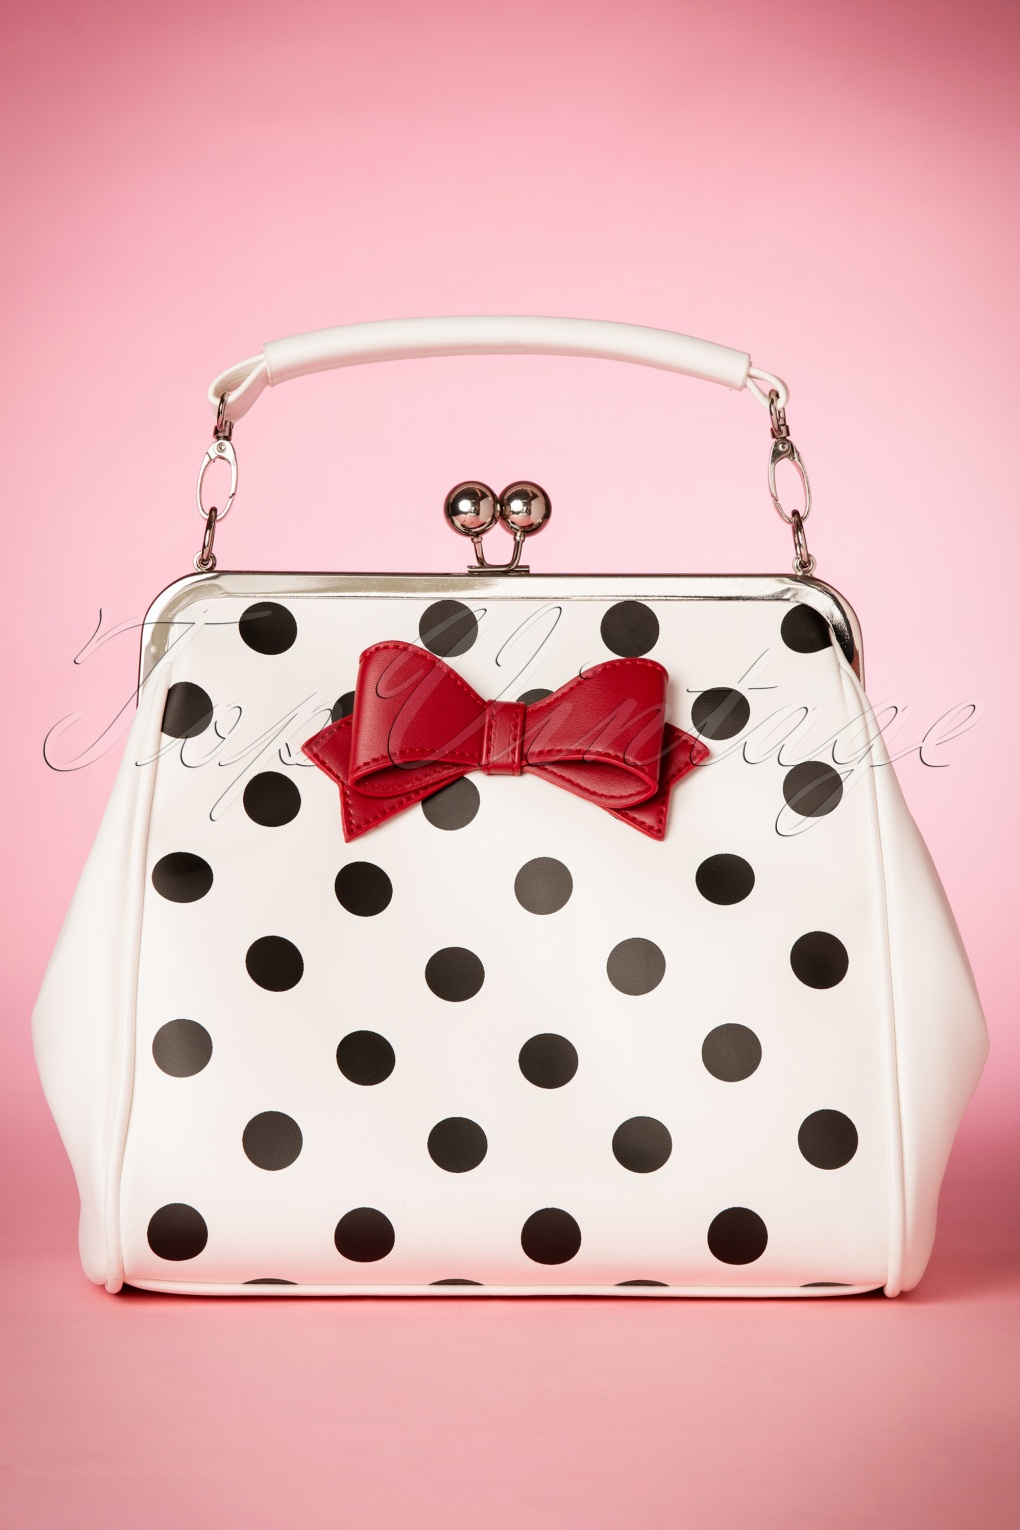 Retro Handbags, Purses, Wallets, Bags 50s Mindy Polkadot Handbag in White £54.87 AT vintagedancer.com